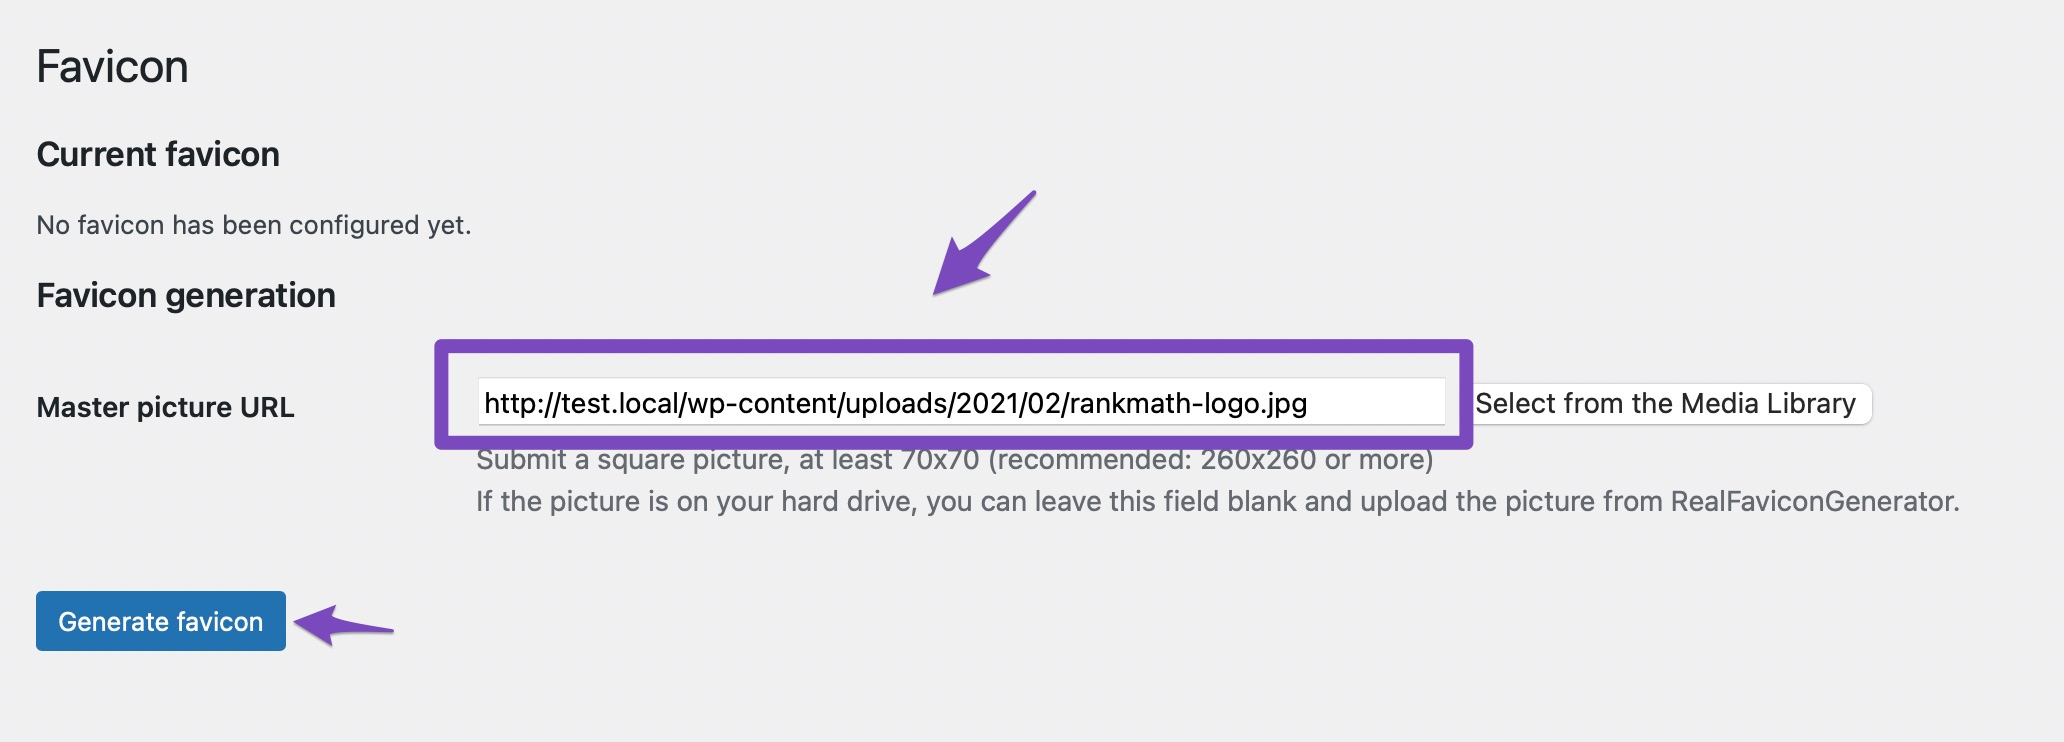 Enter the picture URL and click on Generate favicon